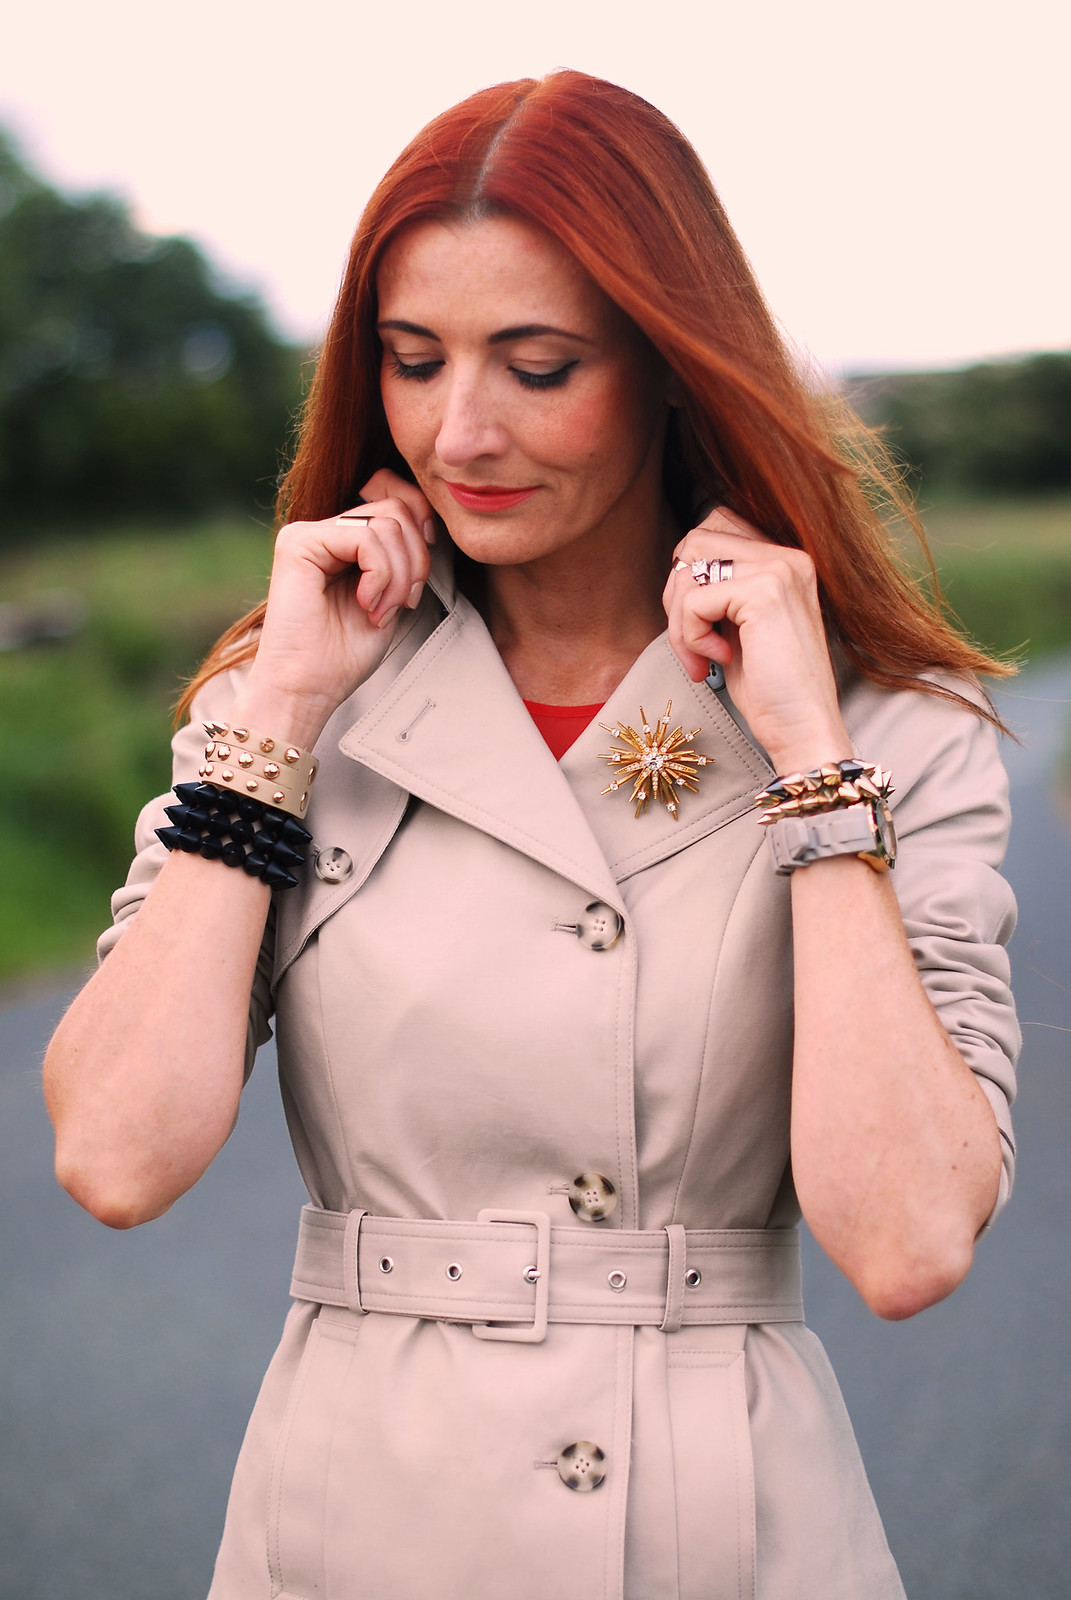 Classic trench coat with gold starburst brooch | Not Dressed As Lamb